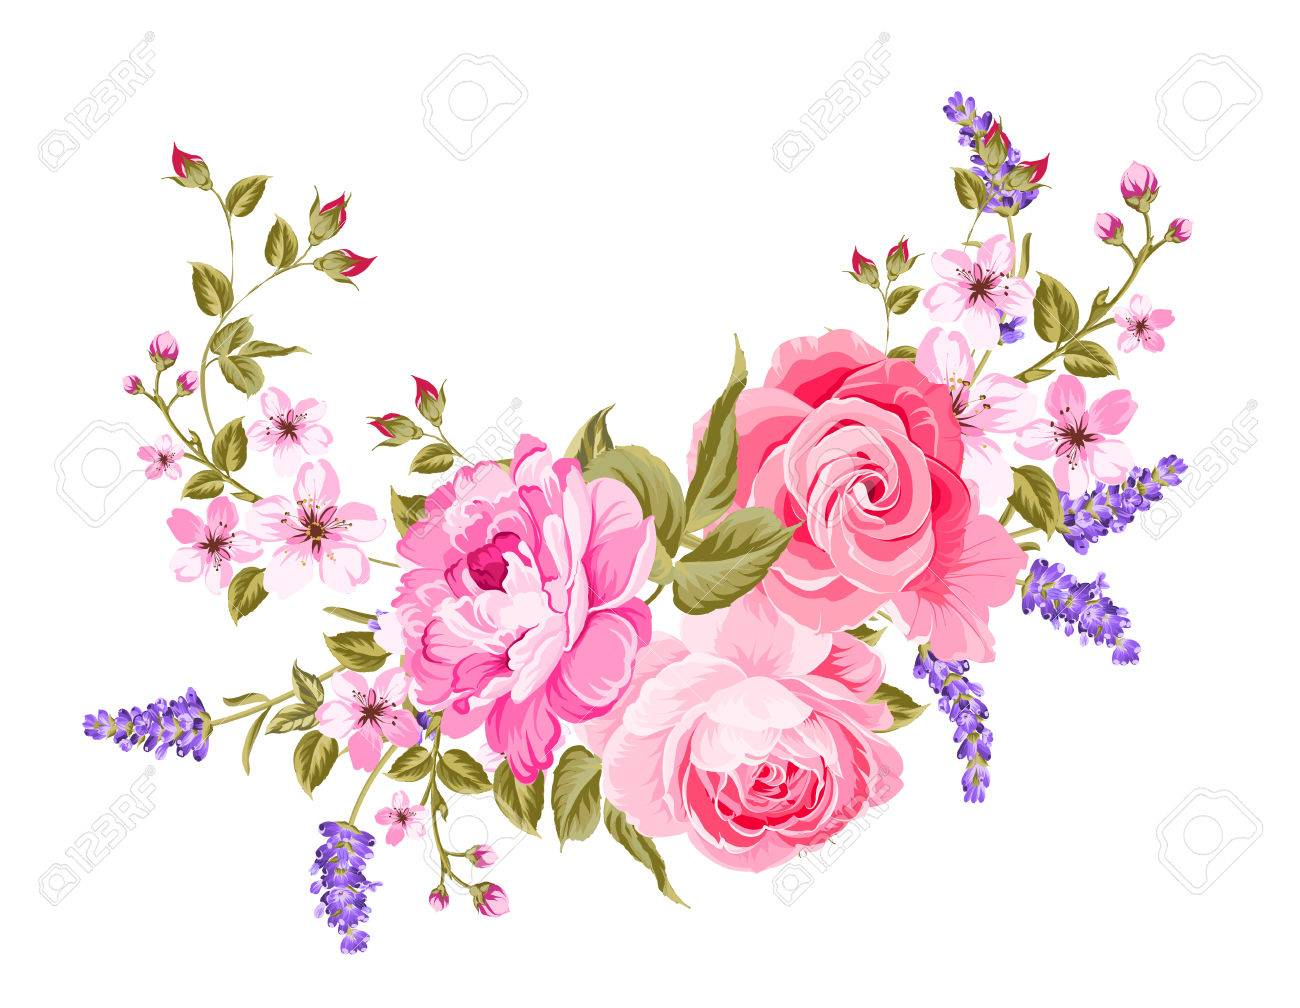 The lavender elegant card. Botanical illustration of provence lavender. Bouquet of red flowers and lavender in vintage style. Card with place for your text. Vector illustration. - 69068571